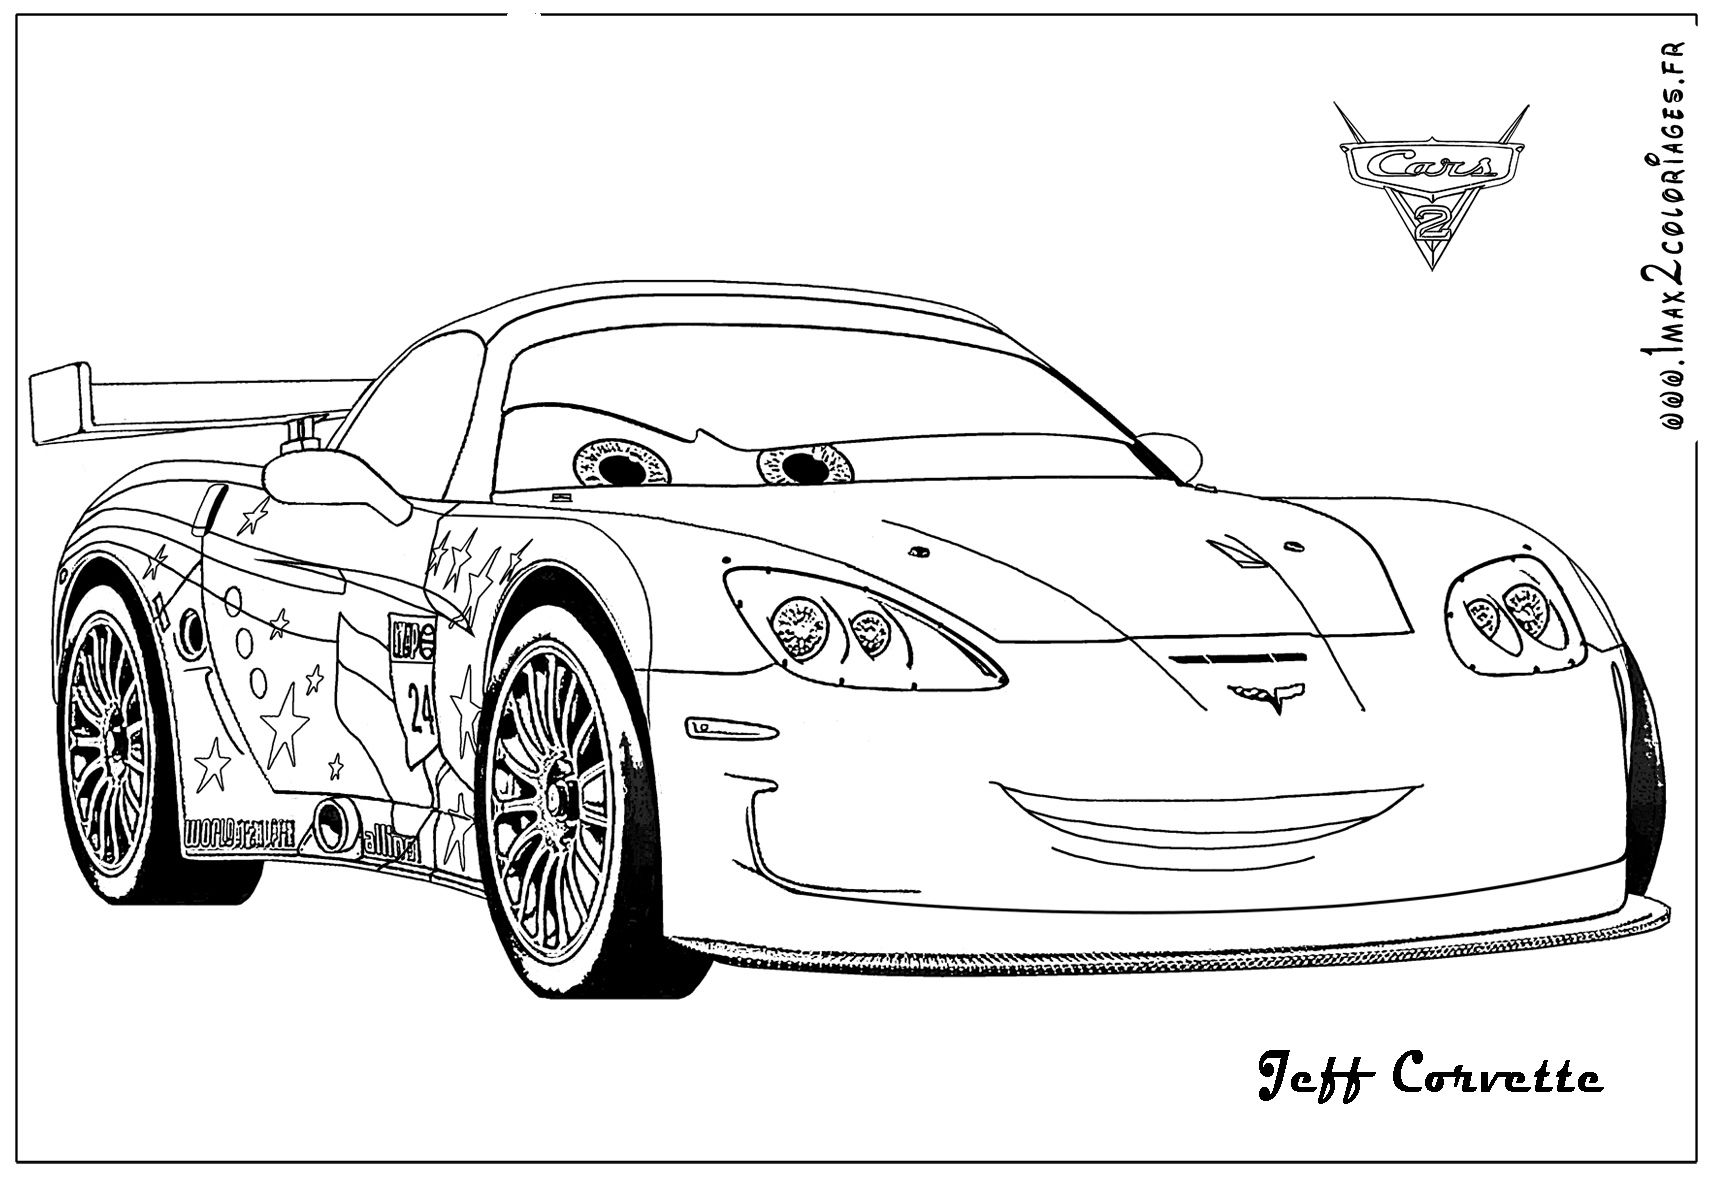 Cars 2 Jeff Corvette Coloring Page Projects to Try